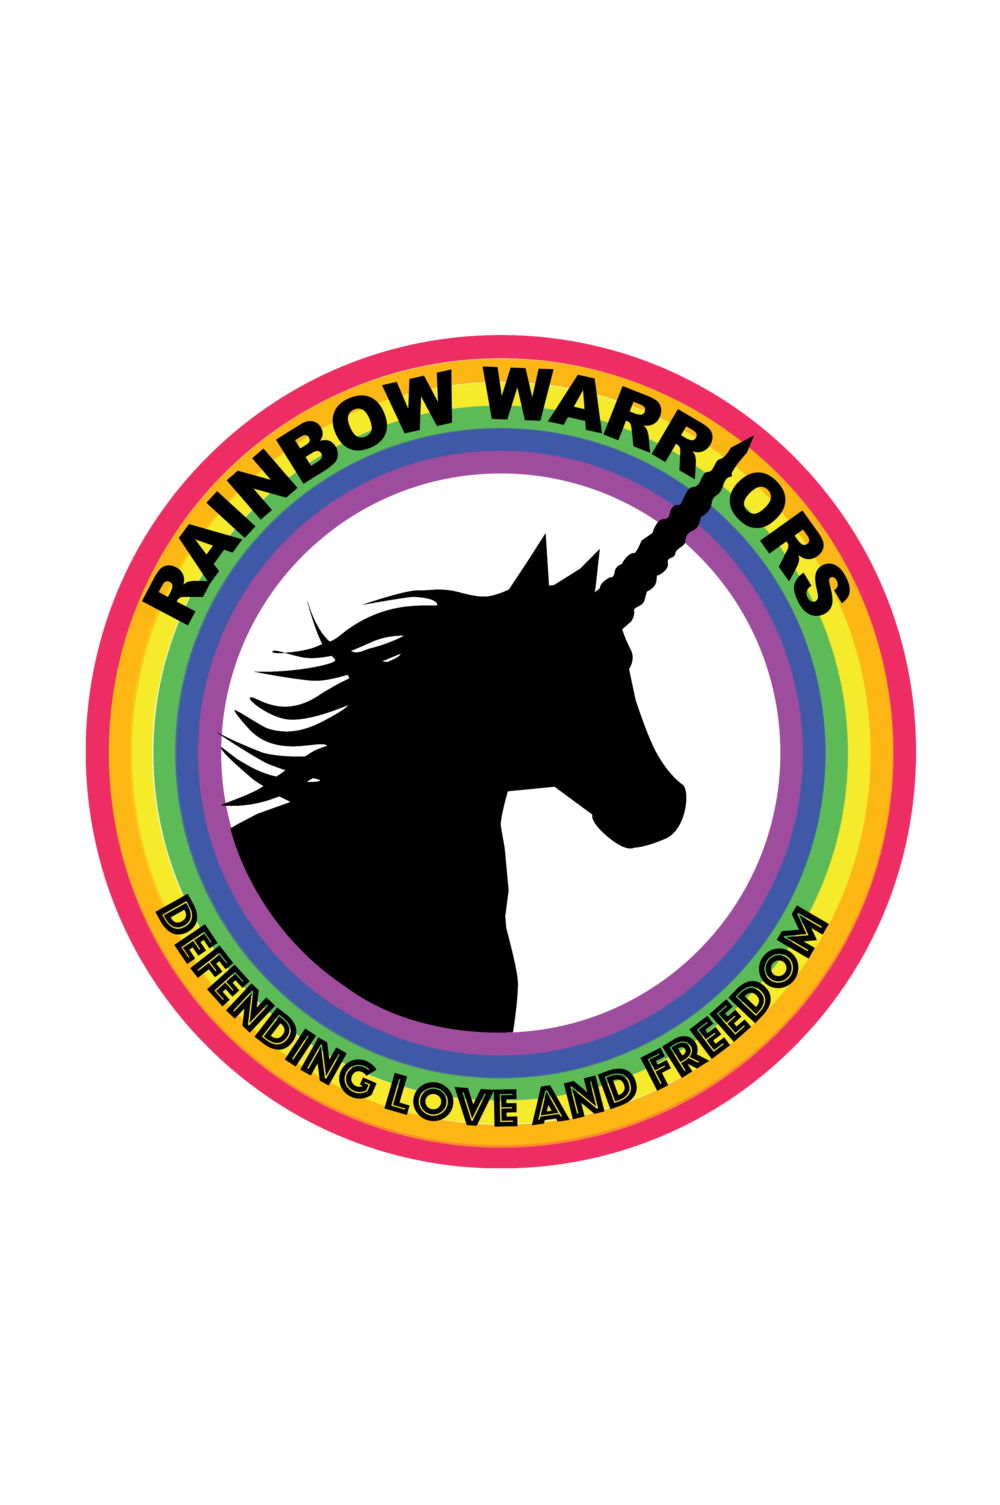 Rainbow Warriors Poster  €9.99–€14.99 Available in A4, A3